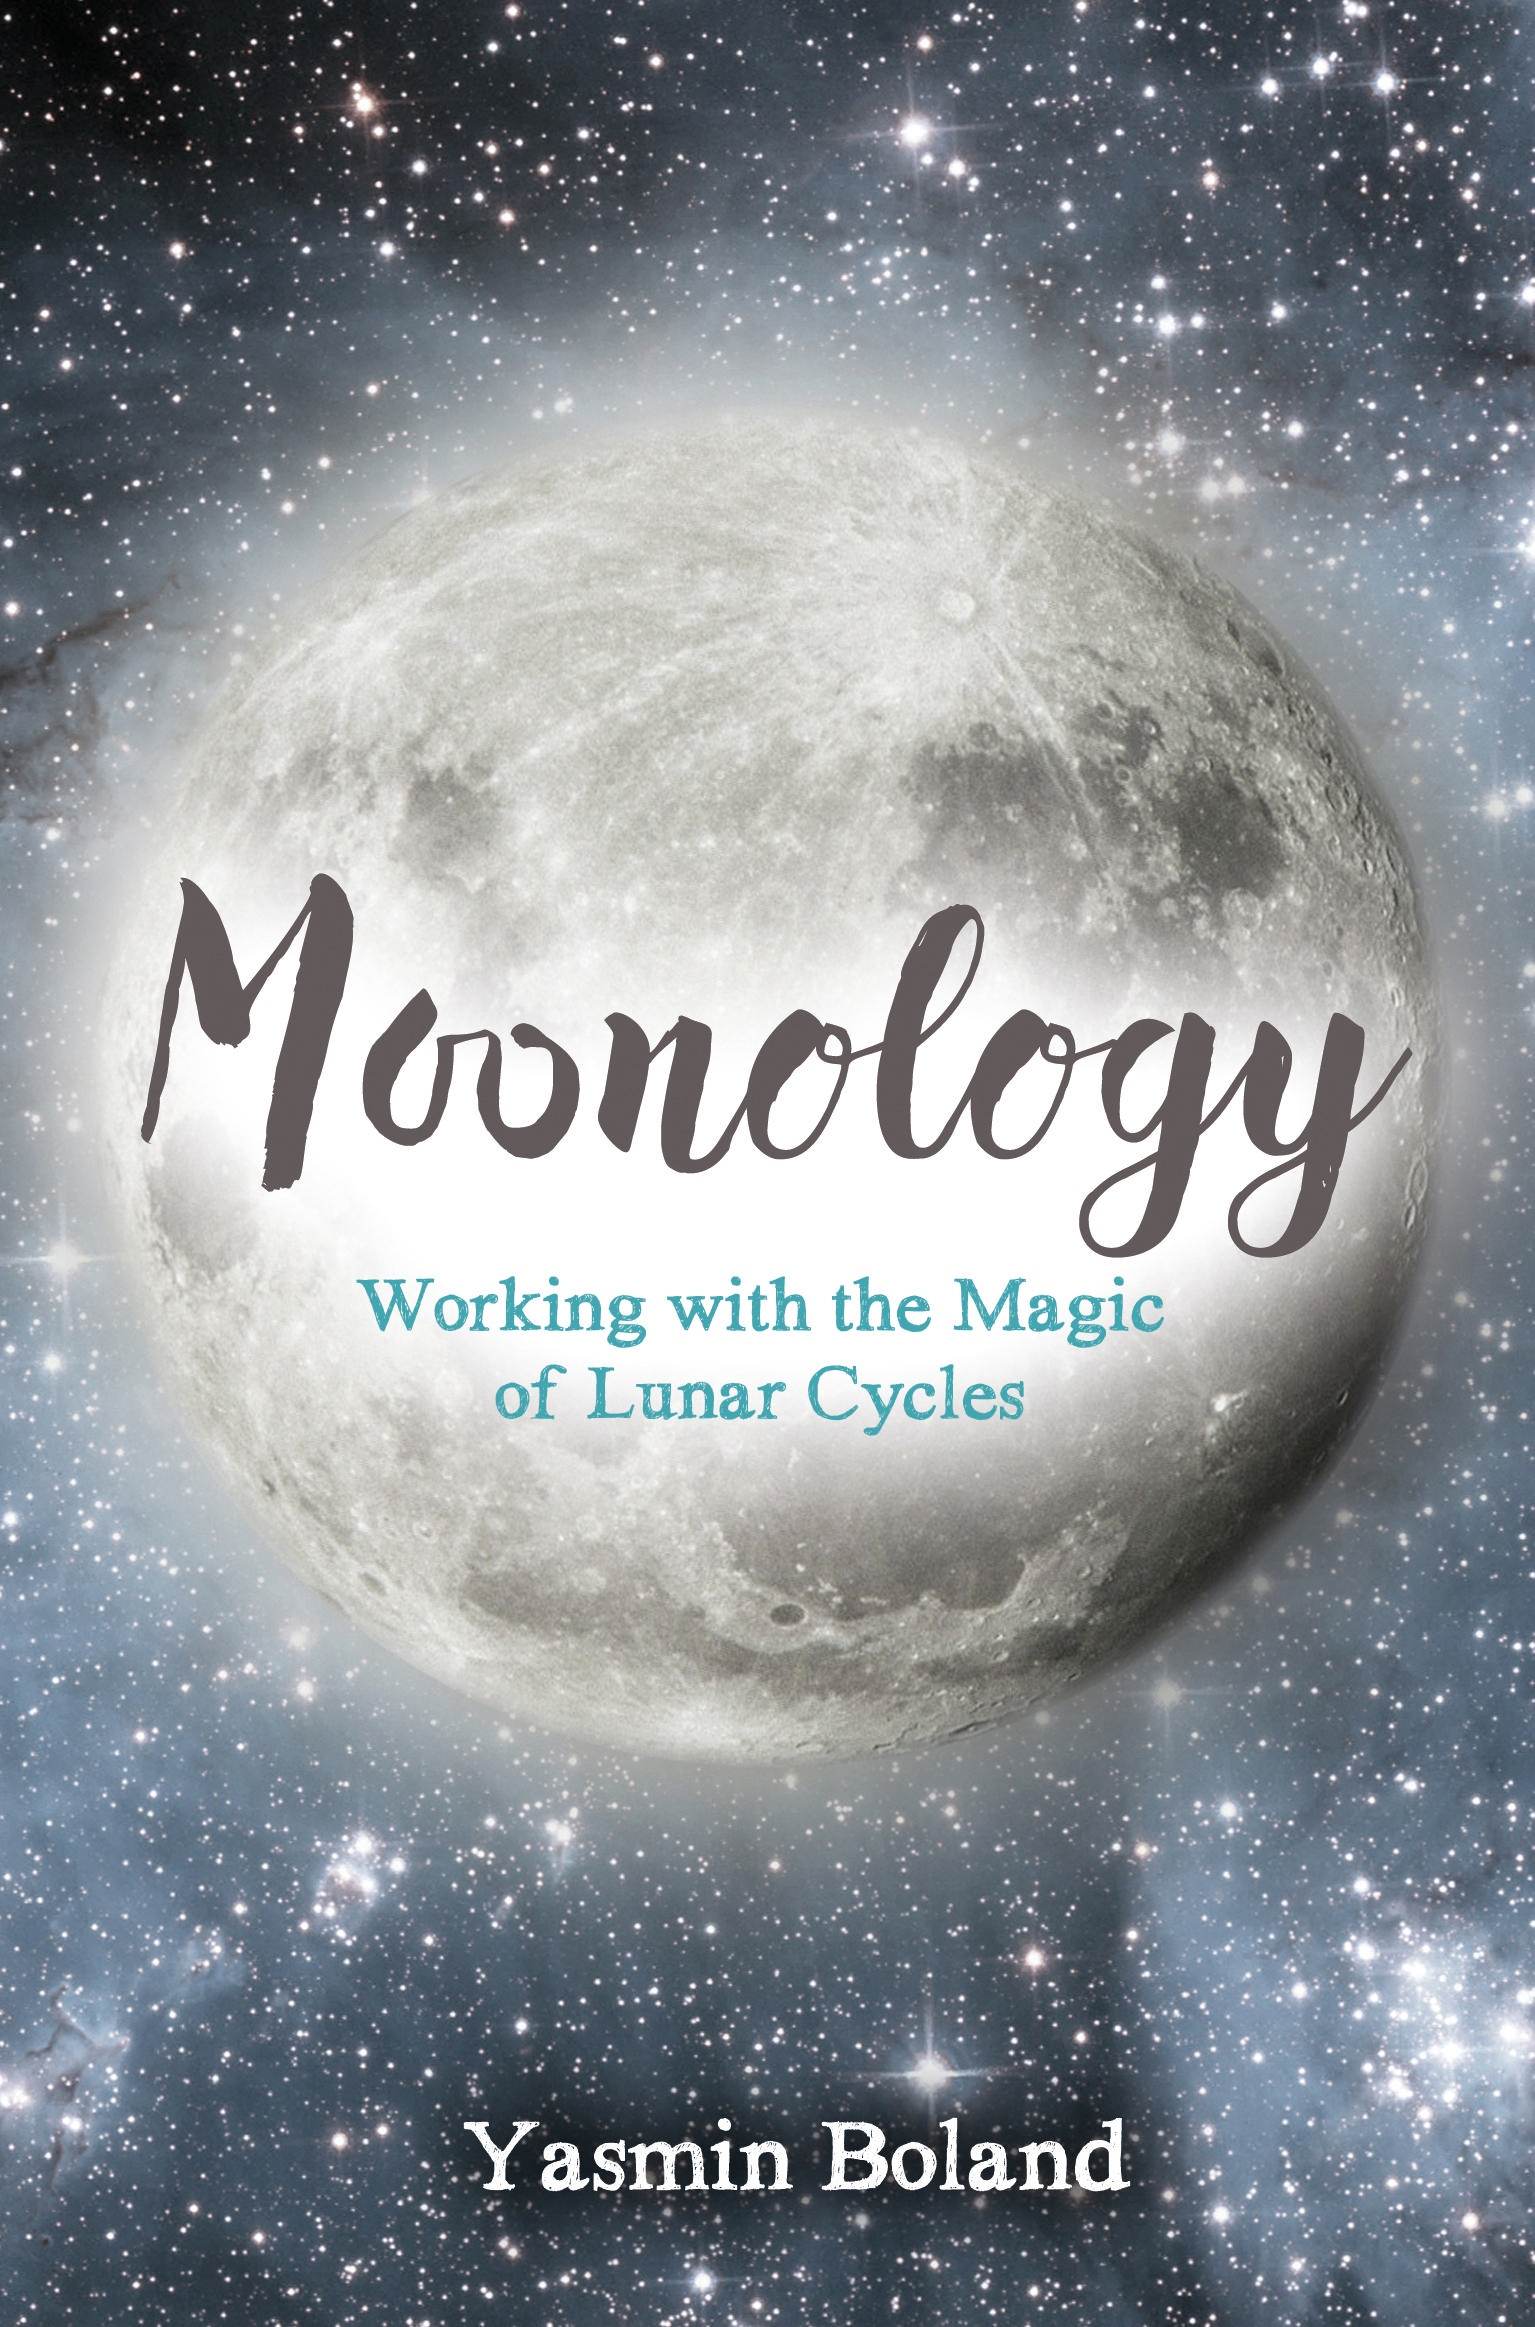 Moonology: Working With the Magic of Lunar Cycles by Yasmin Boland, ISBN: 9781781807422